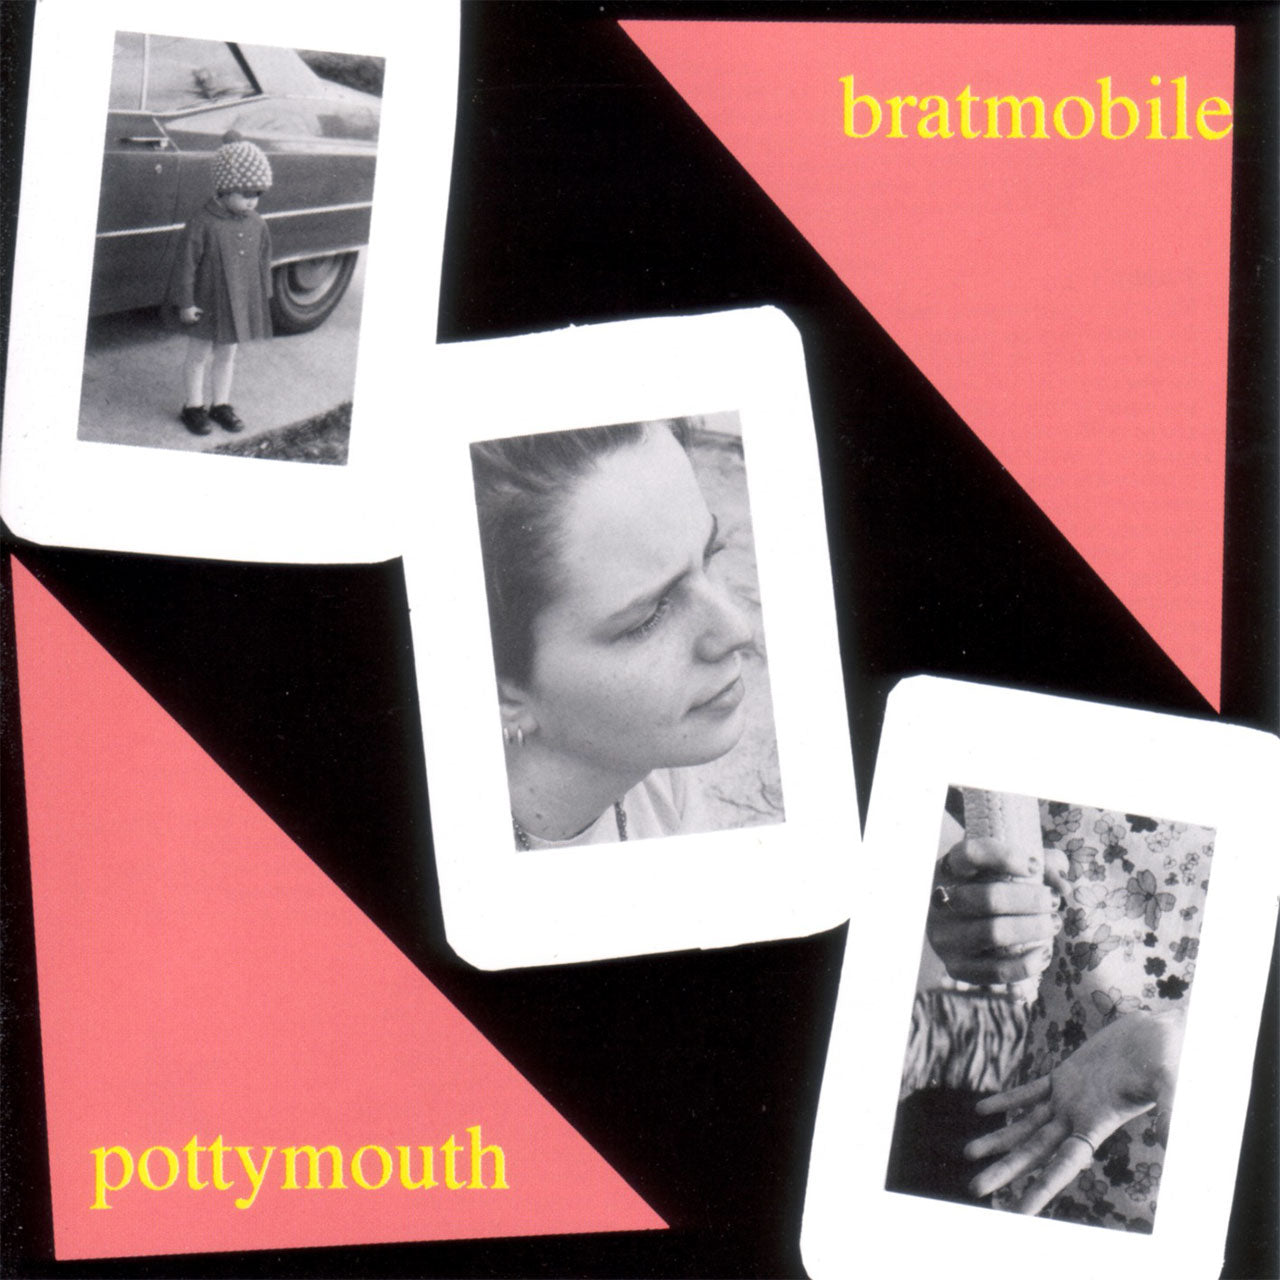 Bratmobile - Pottymouth (CD)